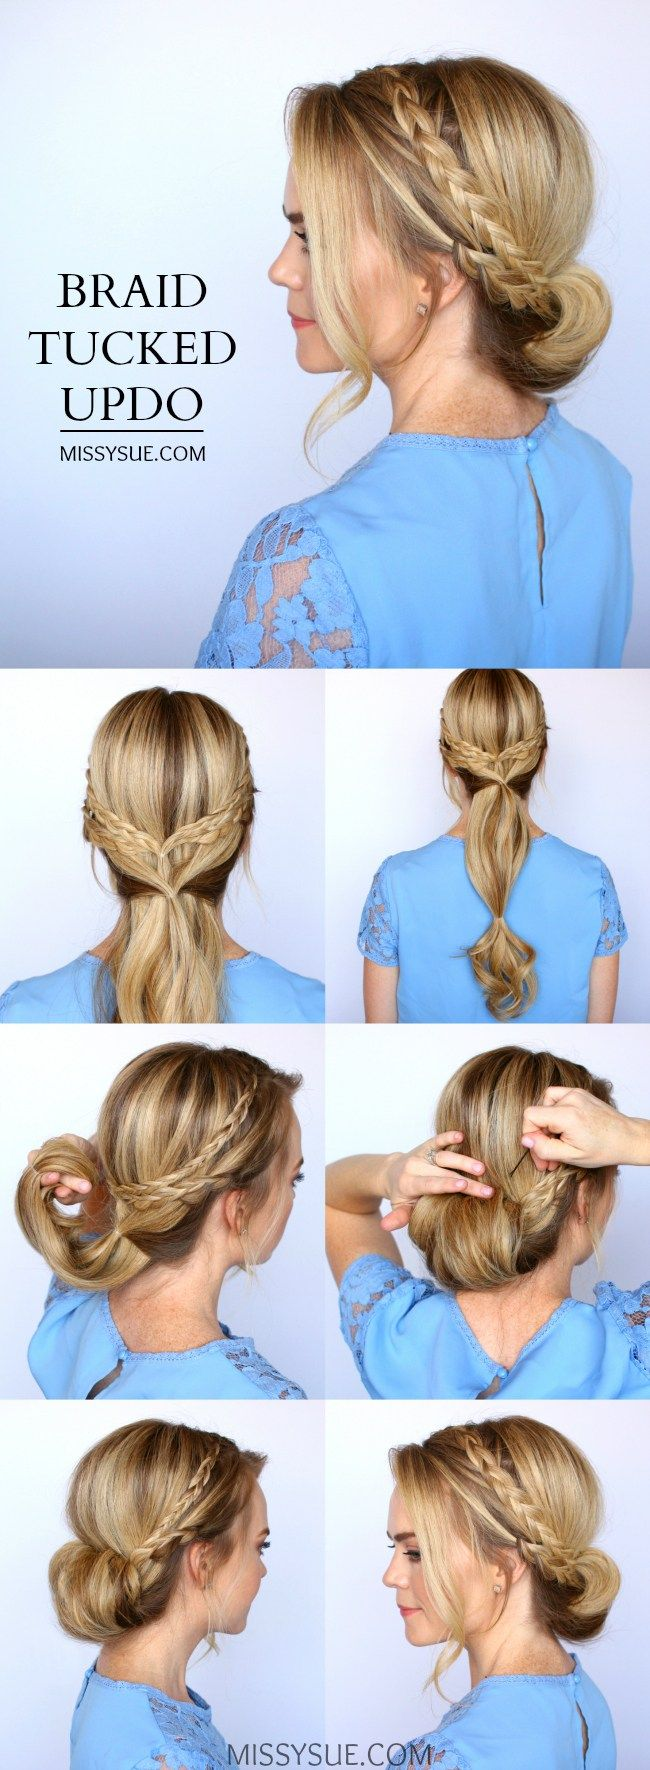 Haircut for boys age 10 braided tucked updo by missy sue  hair  pinterest  updo hair